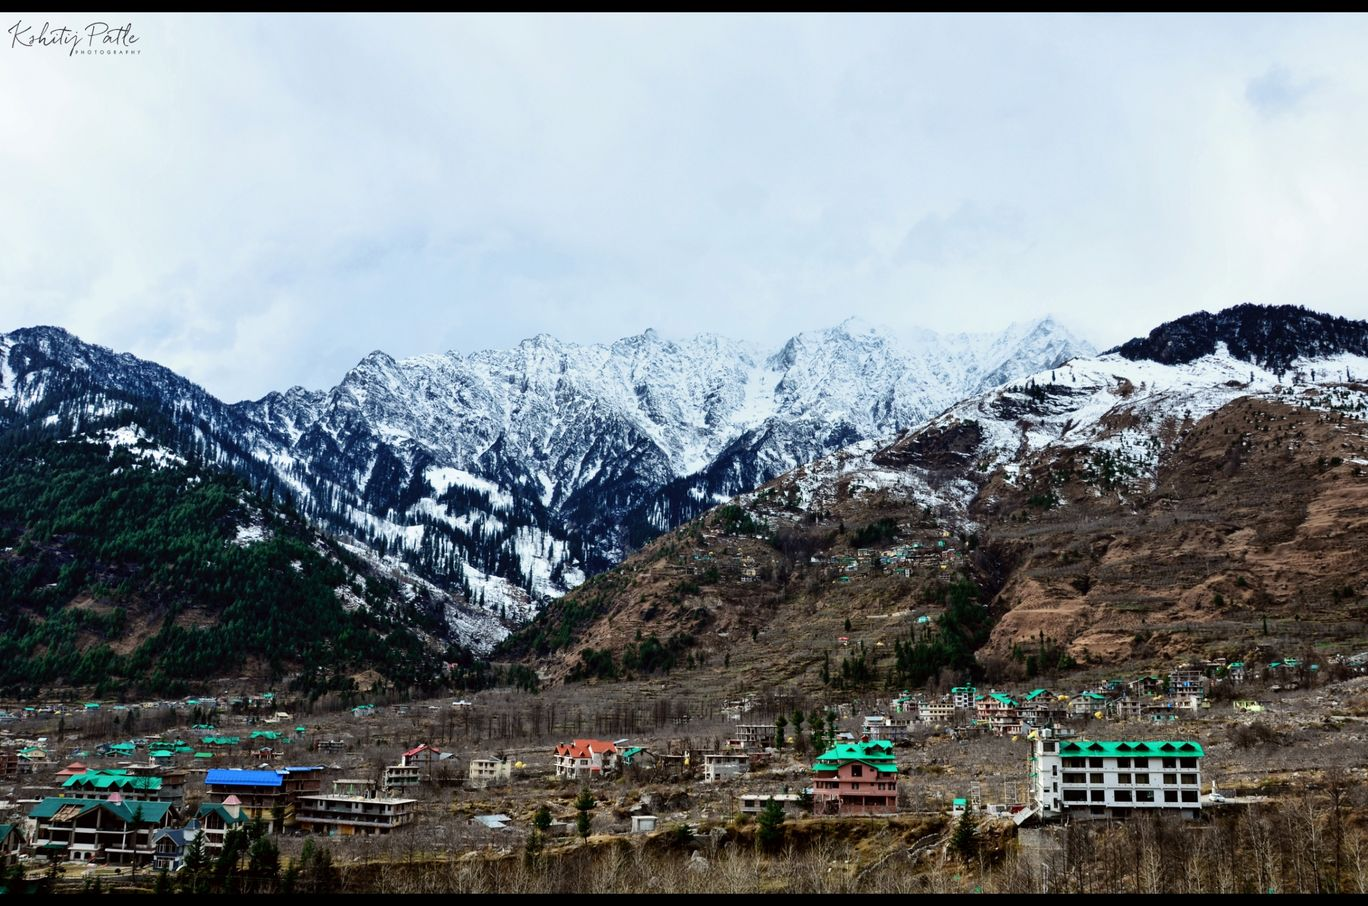 Photo of Manali By Kshitij Patle